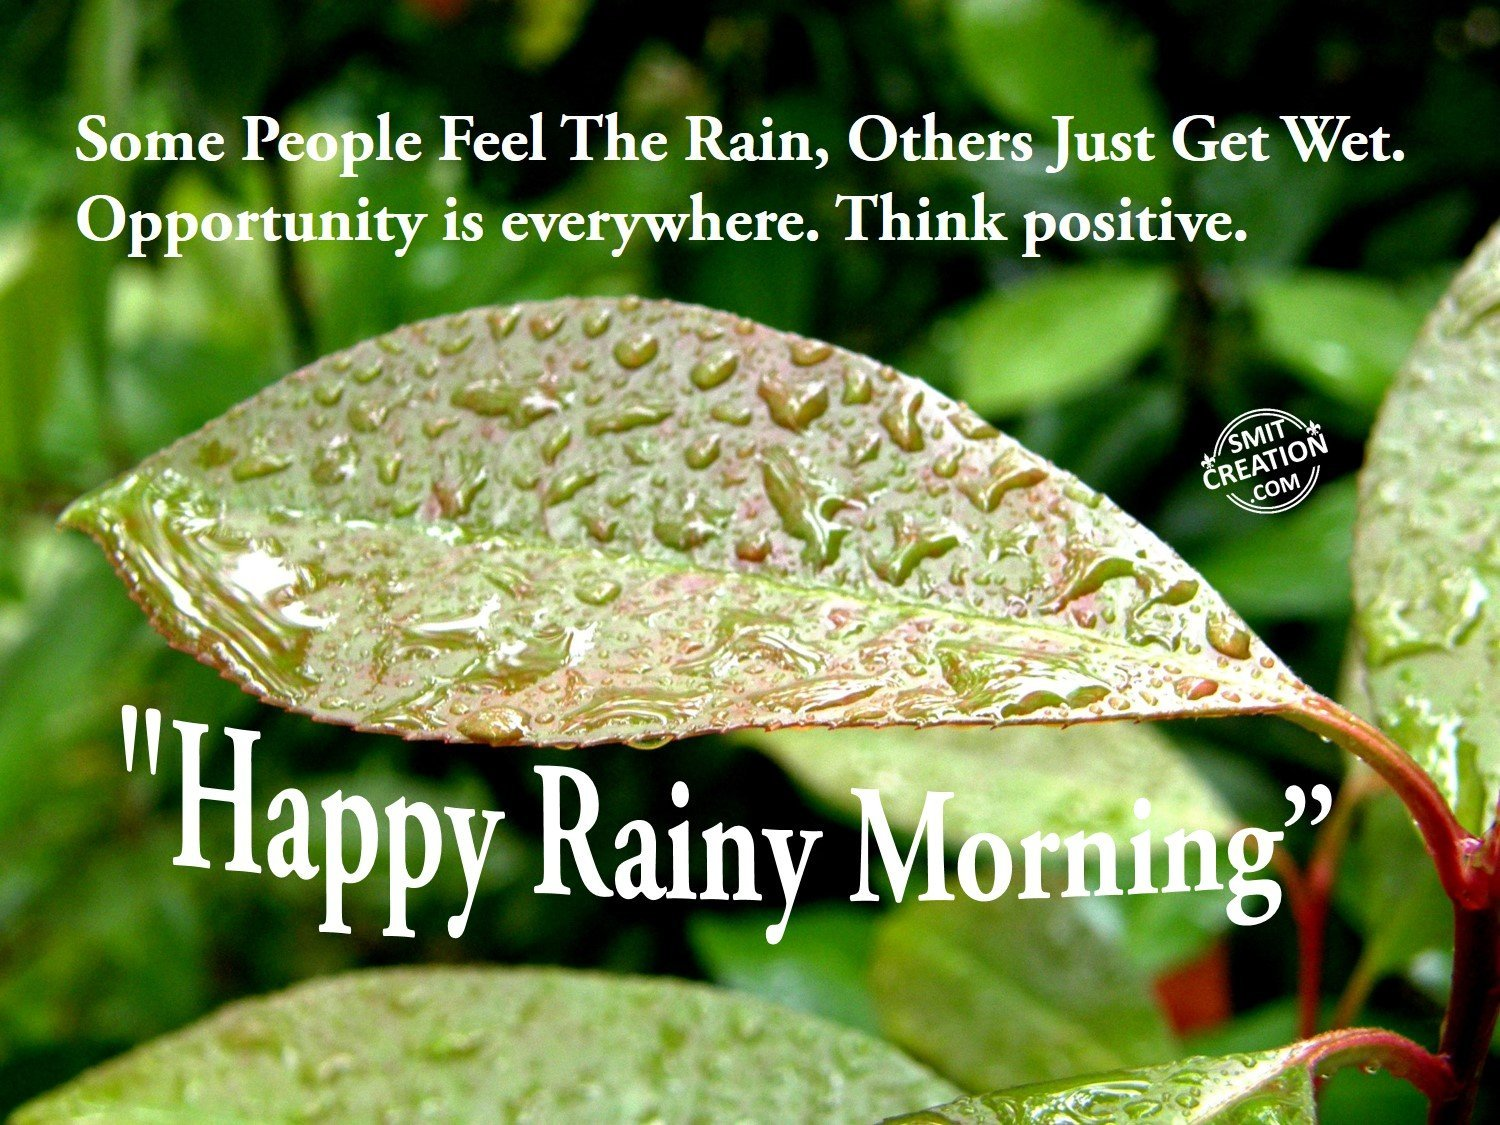 Good Morning Pictures and Graphics - SmitCreation.com - Page 2